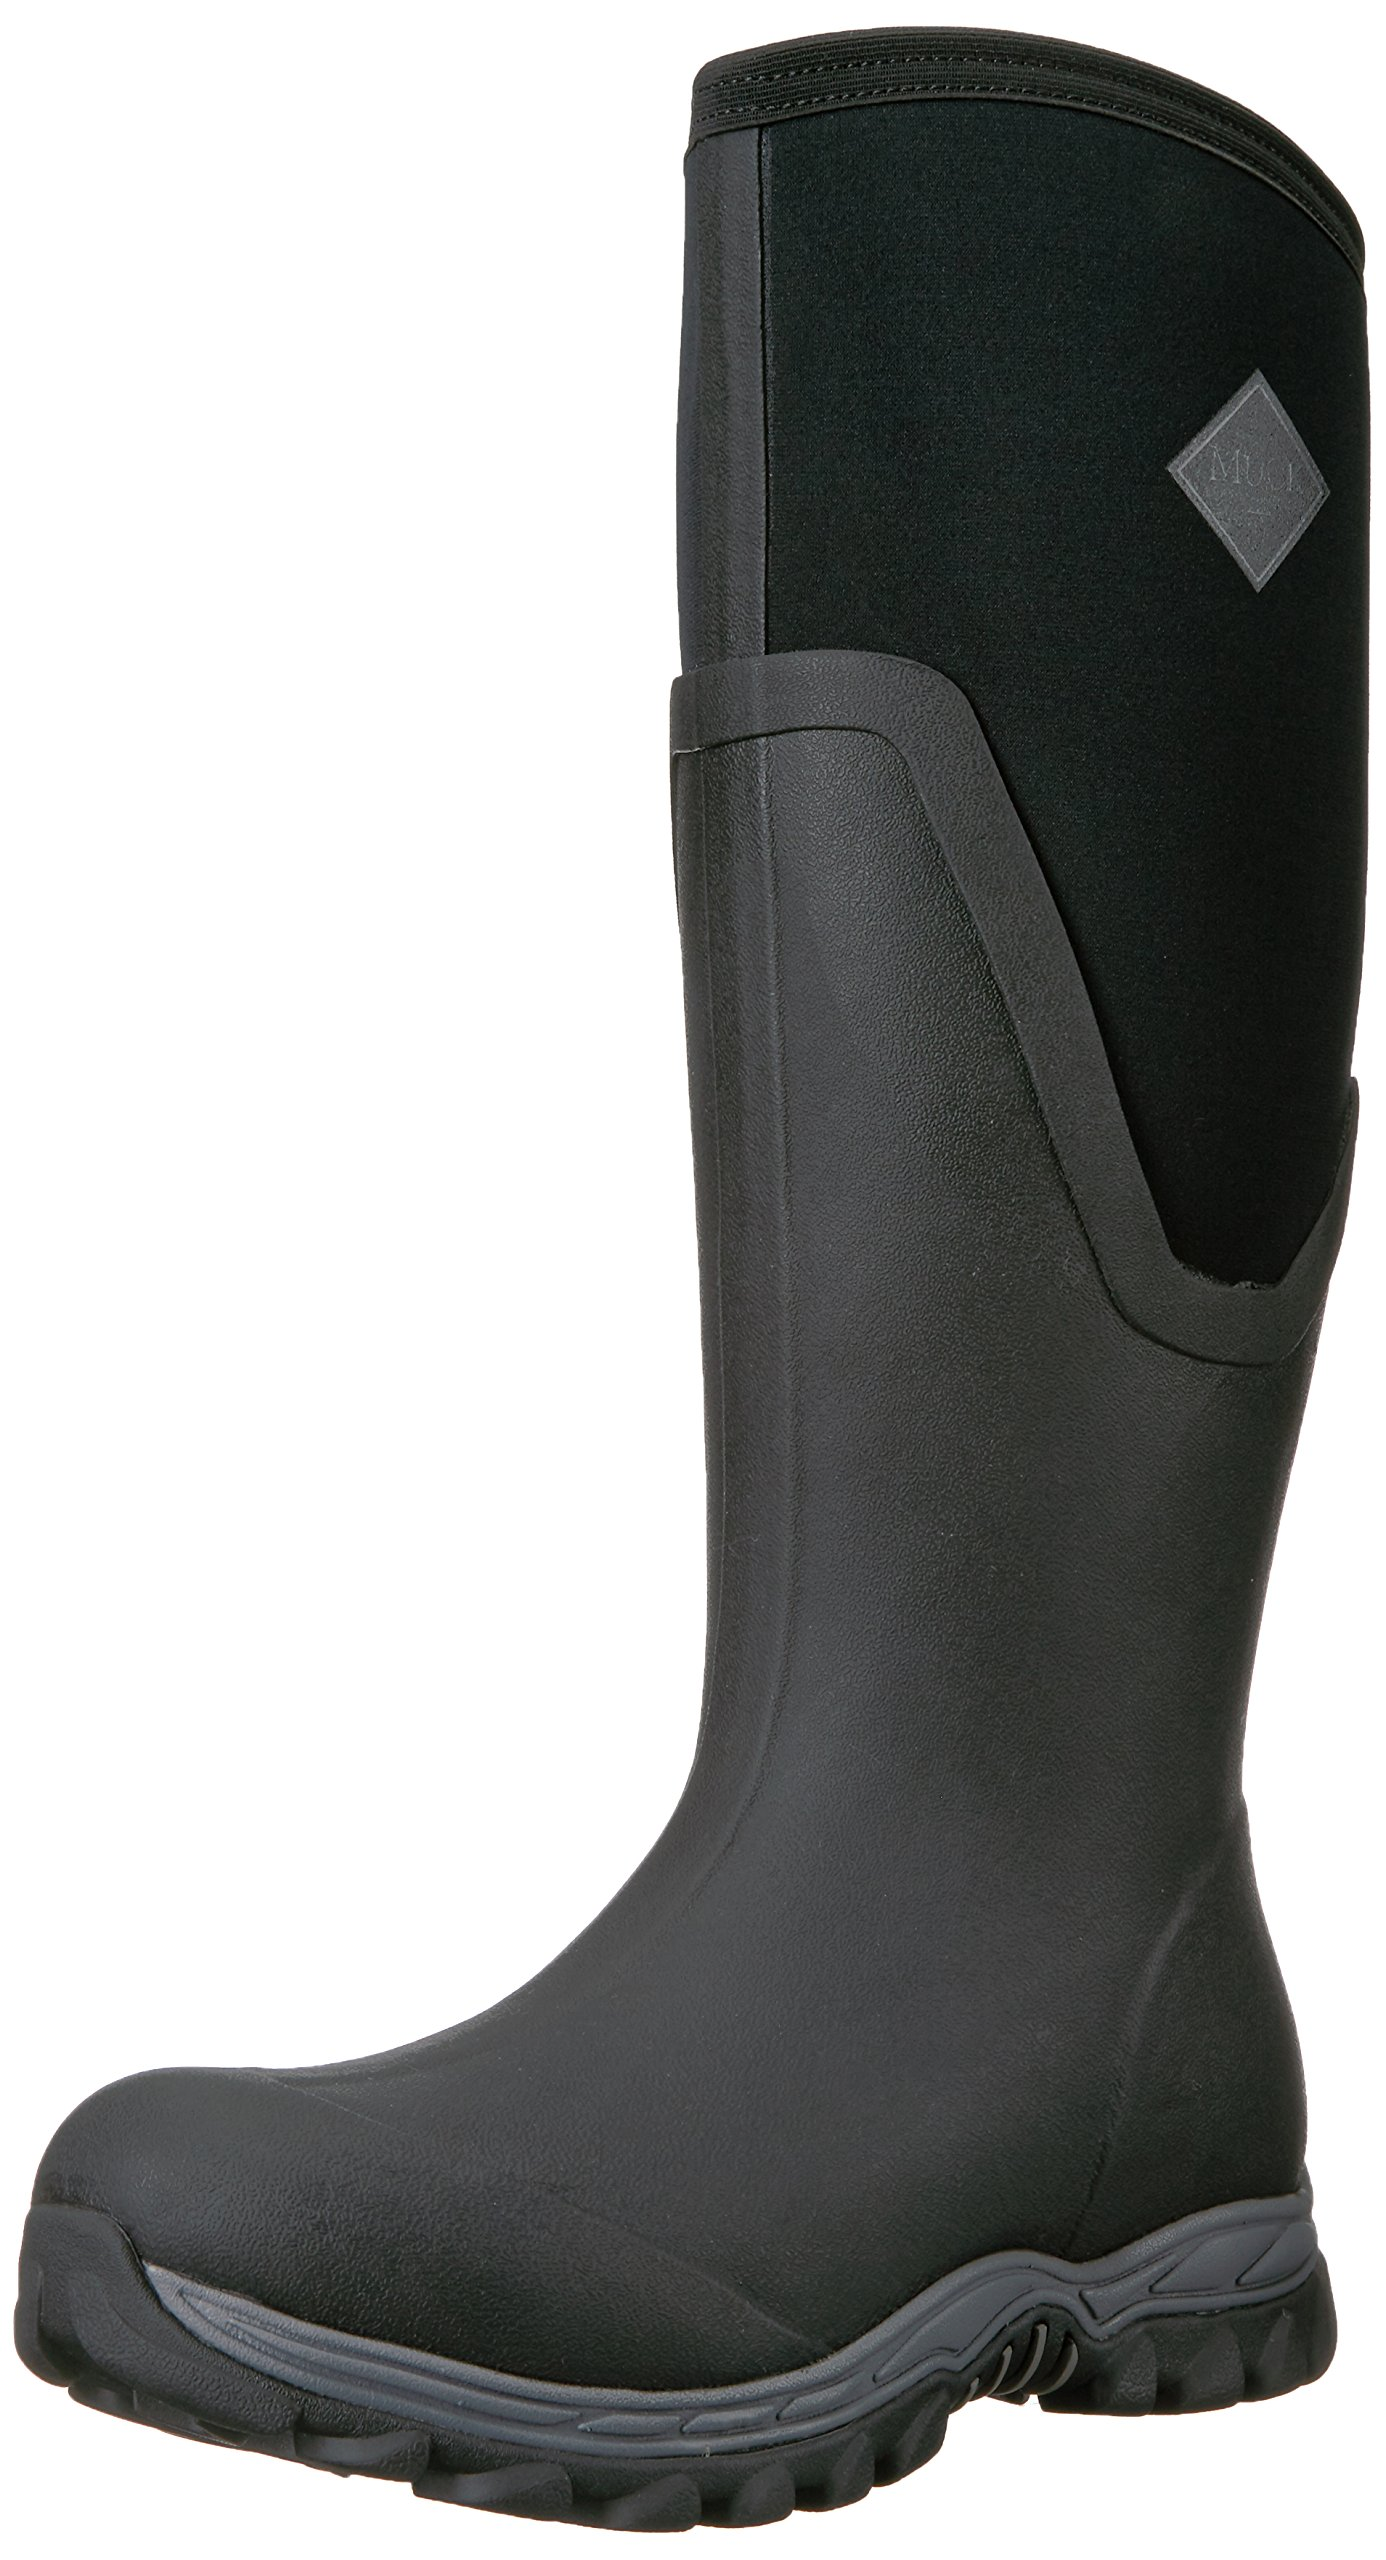 Muck Arctic Sport ll Extreme Conditions Tall Rubber Women's Winter Boots by Muck Boot